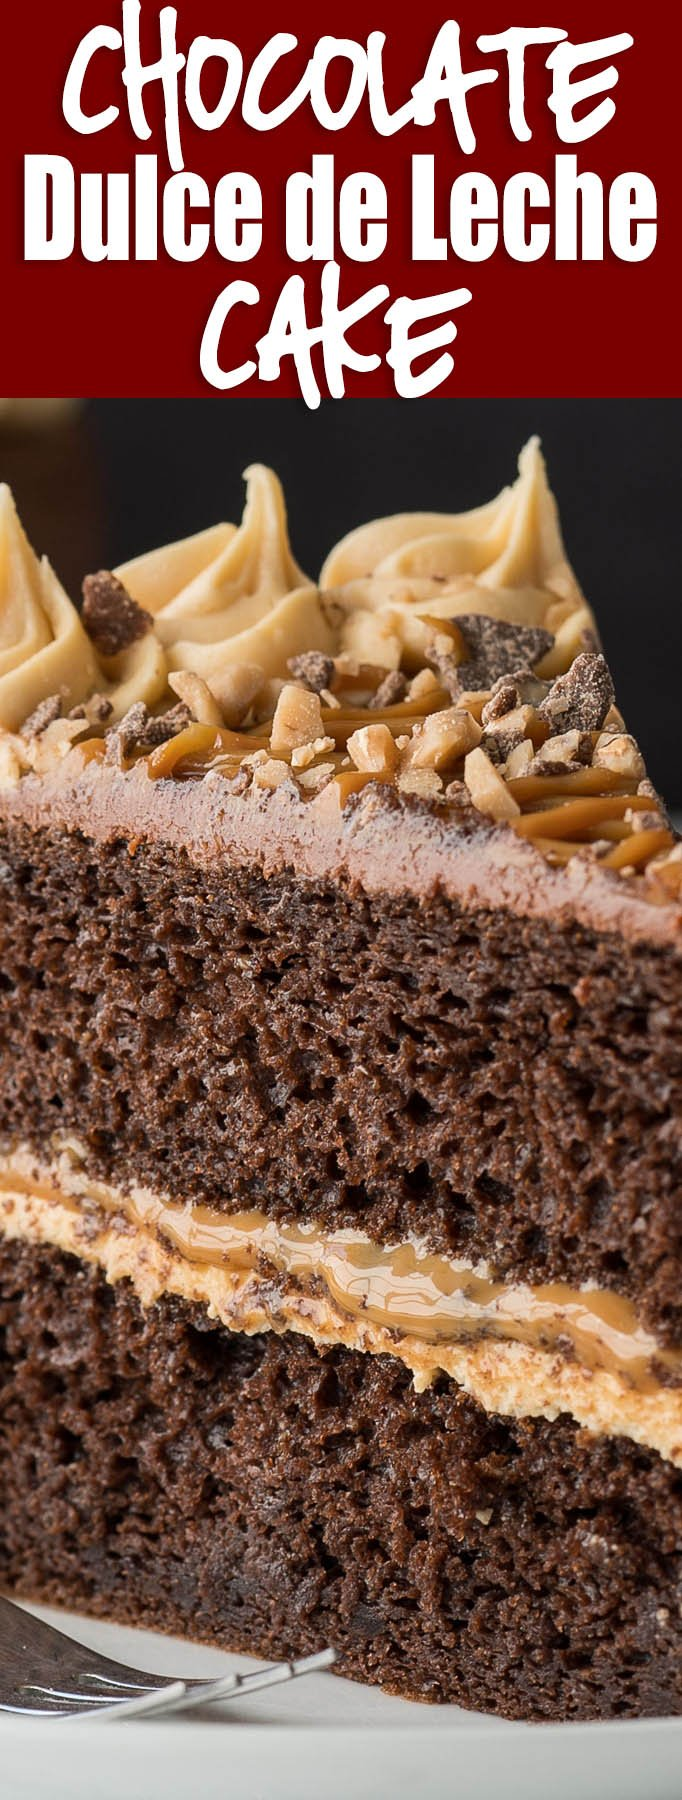 WOW! This Chocolate Dulce de Leche Cake is a stunner! We made this for my mother-in-law's birthday and had RAVE REVIEWS!!